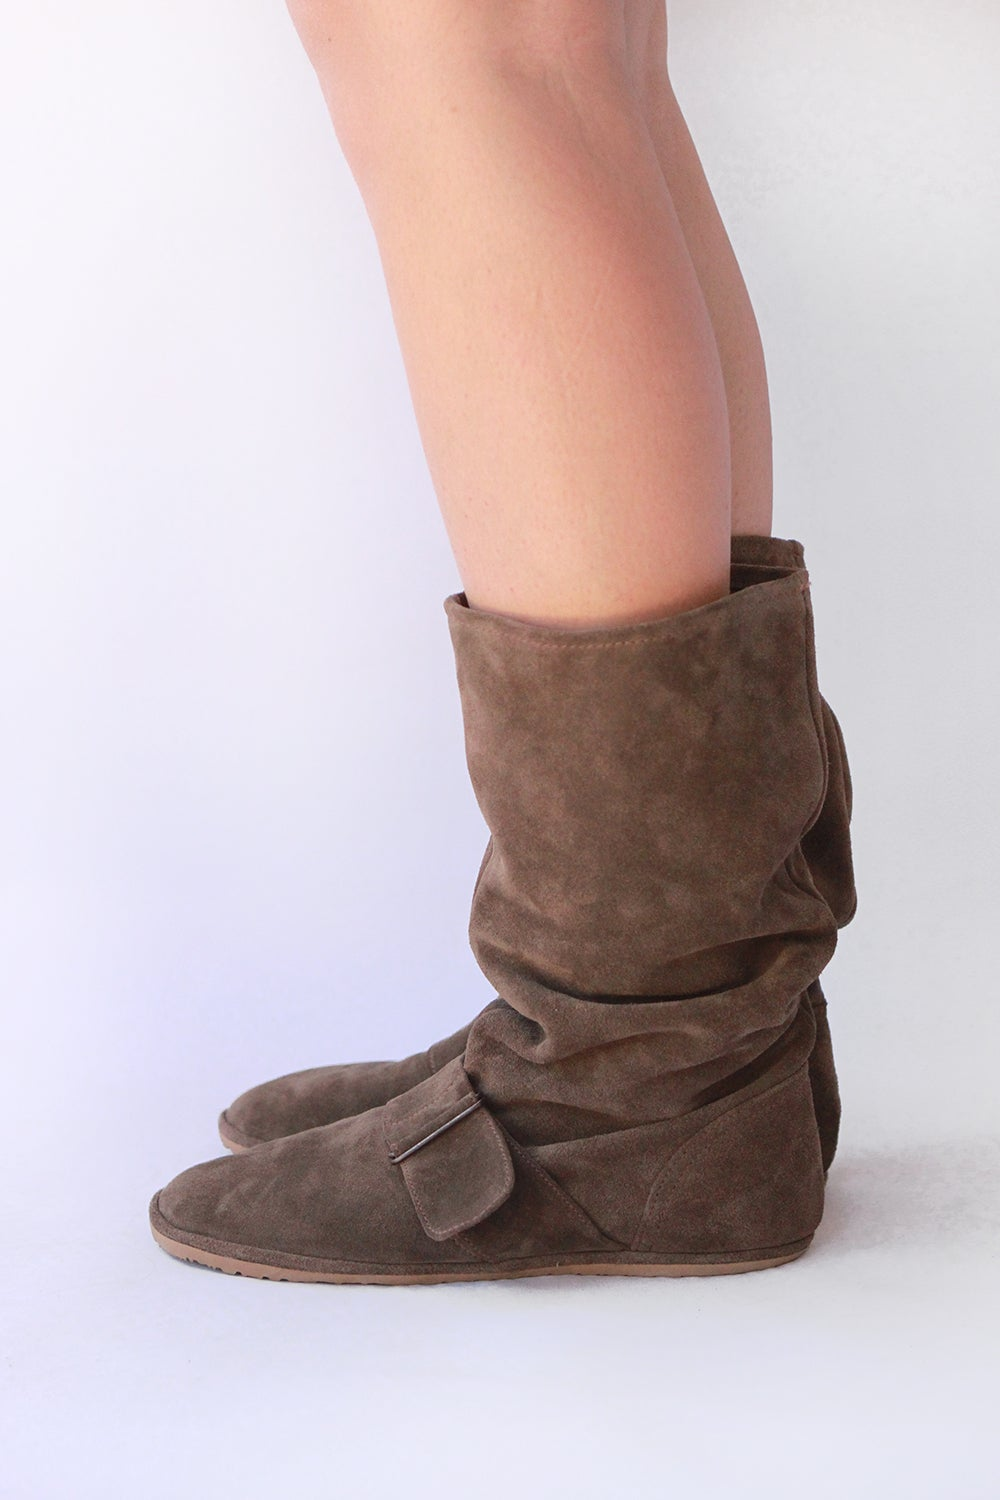 Image of Slouchy Boots in Light Brown suede